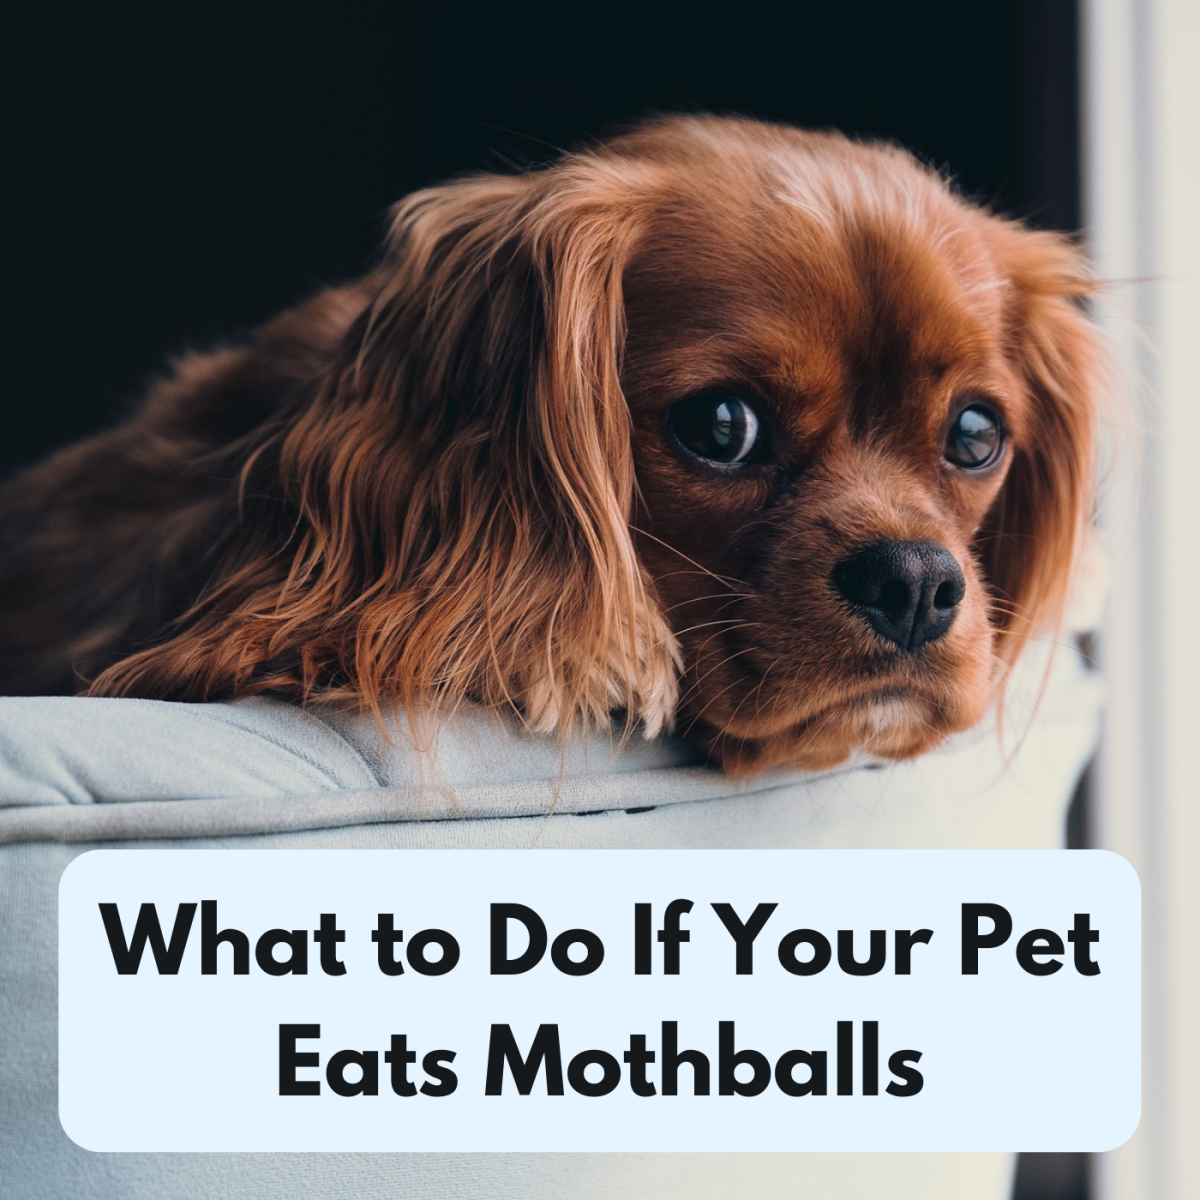 If you suspect that your pet has ingested a mothball, learn how to identify the symptoms and seek professional treatment.